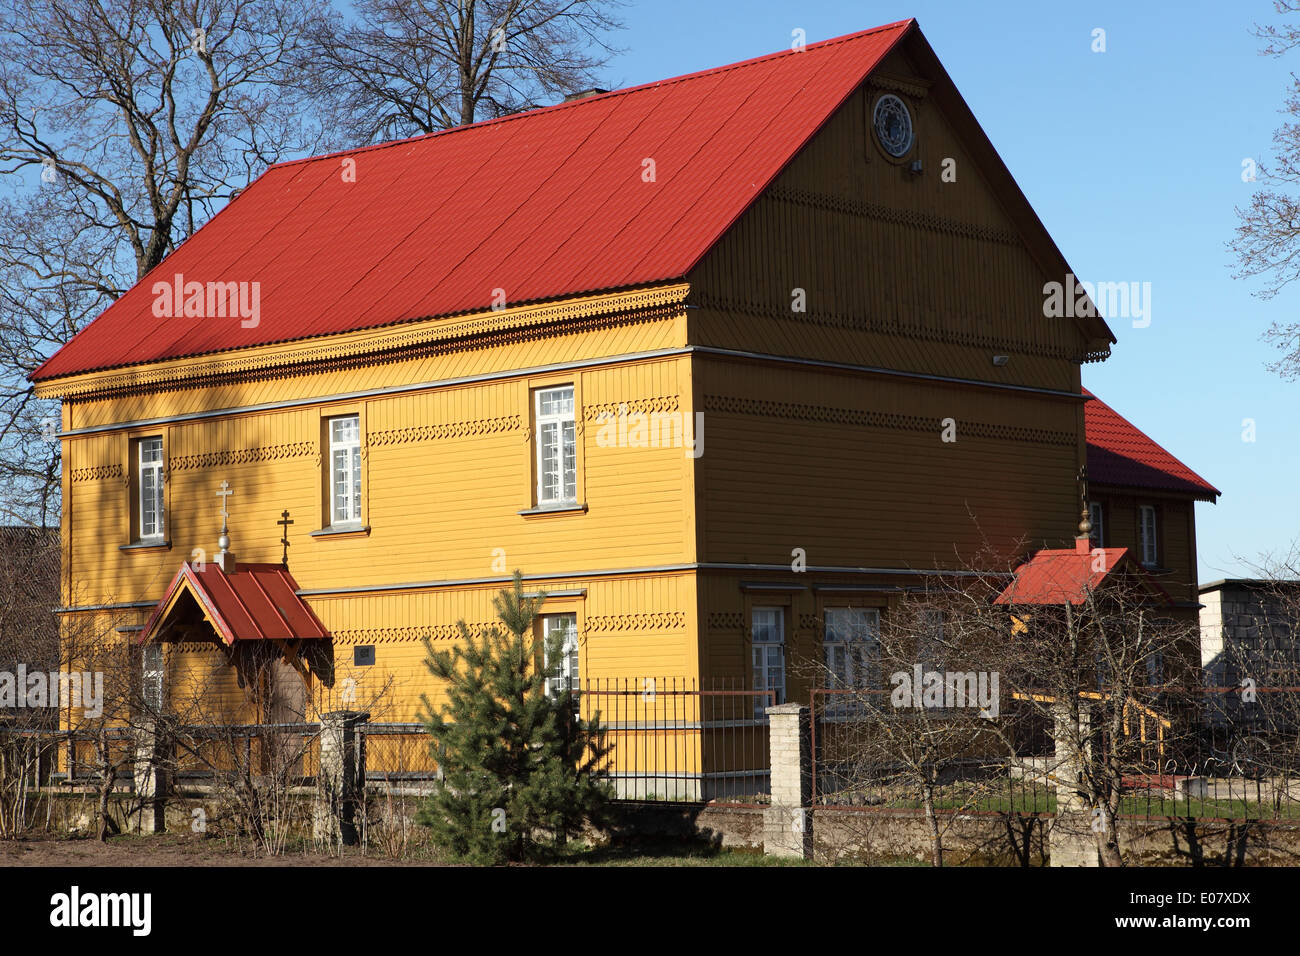 The Old Believer meeting house at Raja, Estonia. - Stock Image